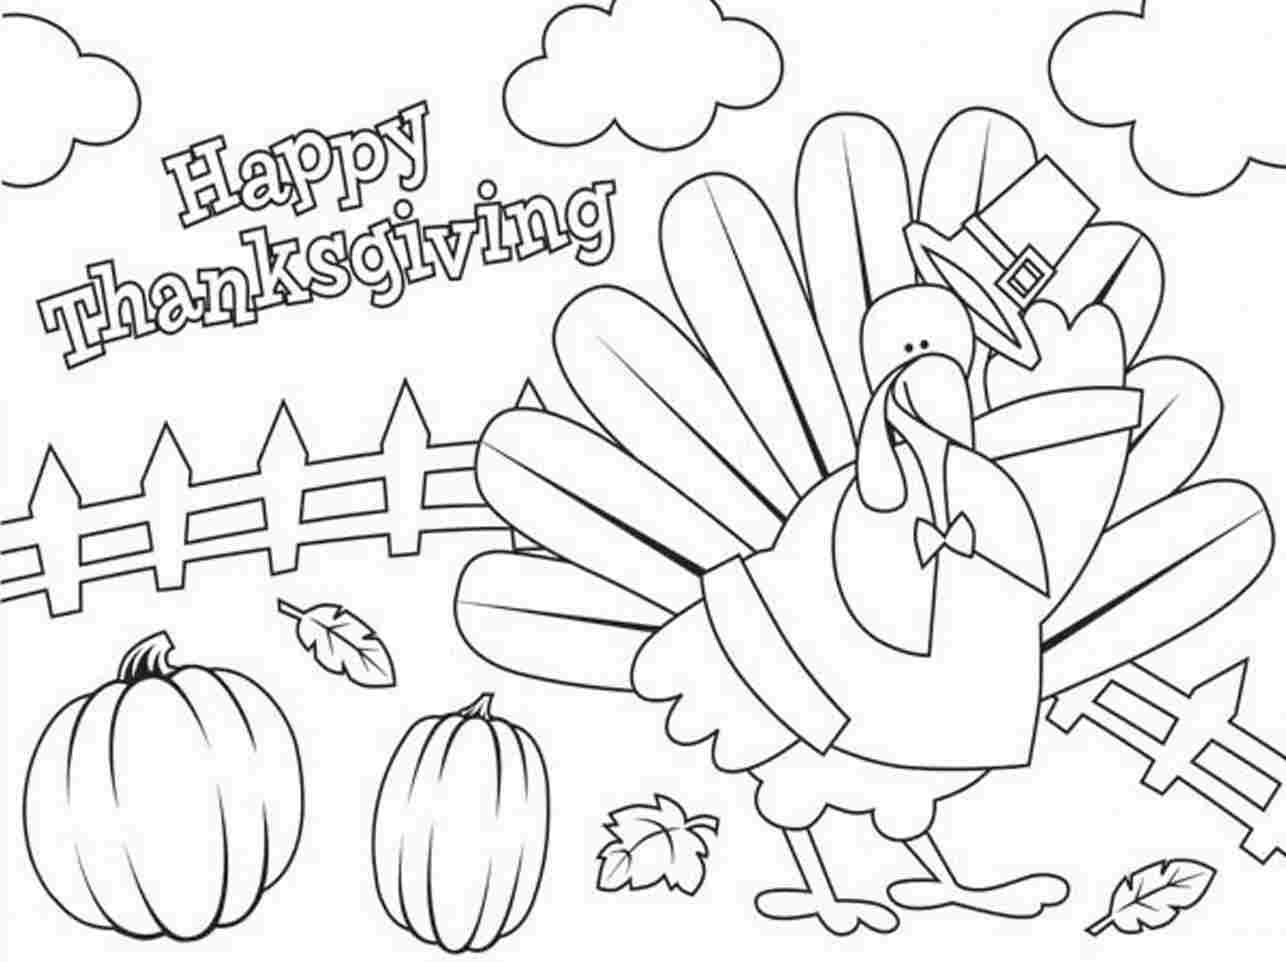 1286x962 Thanksgiving Pictures To Color New Free Printable Turkey Coloring